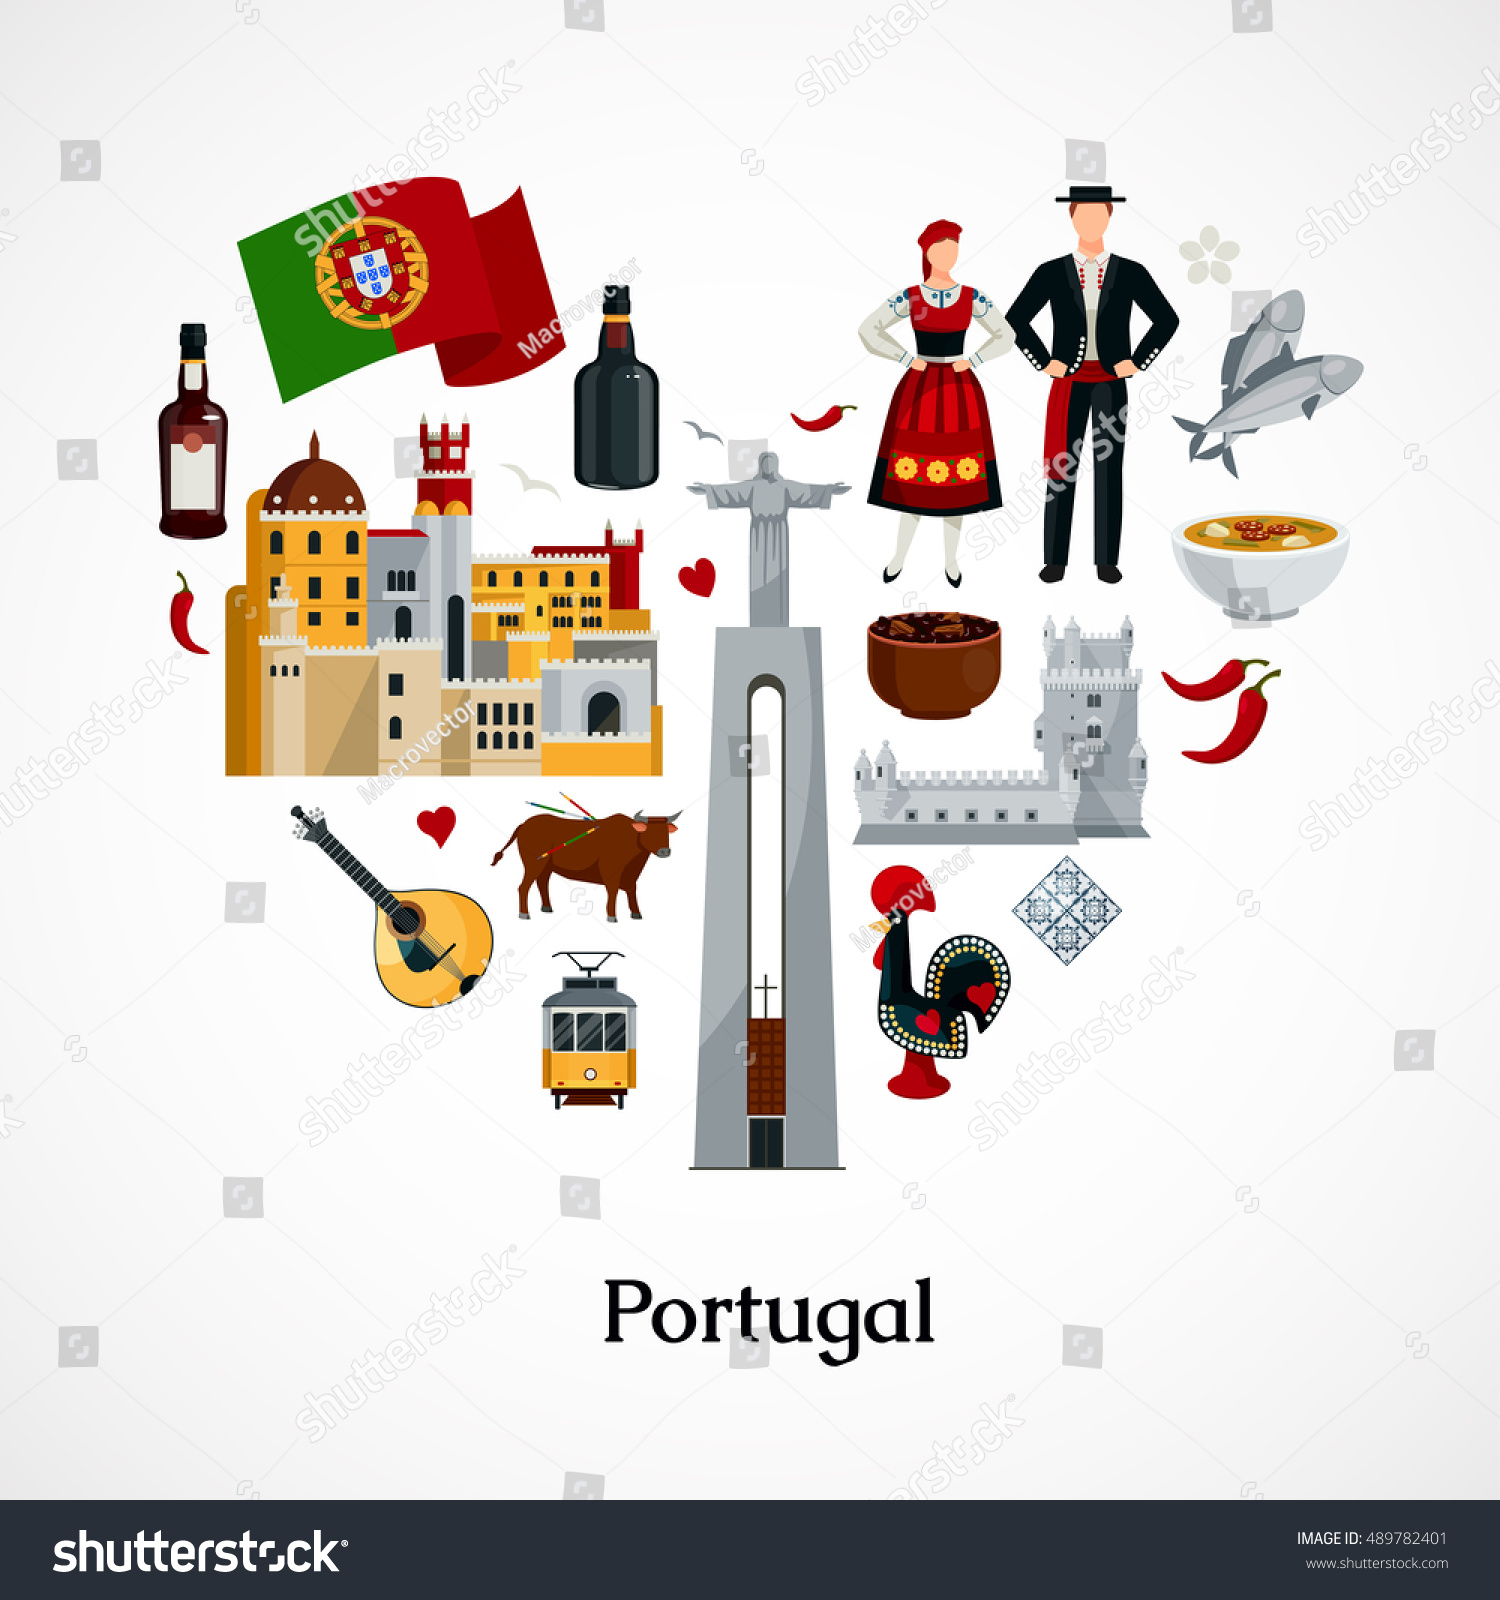 Flat design icon form heart portugal stock vector for Cuisine design portugal